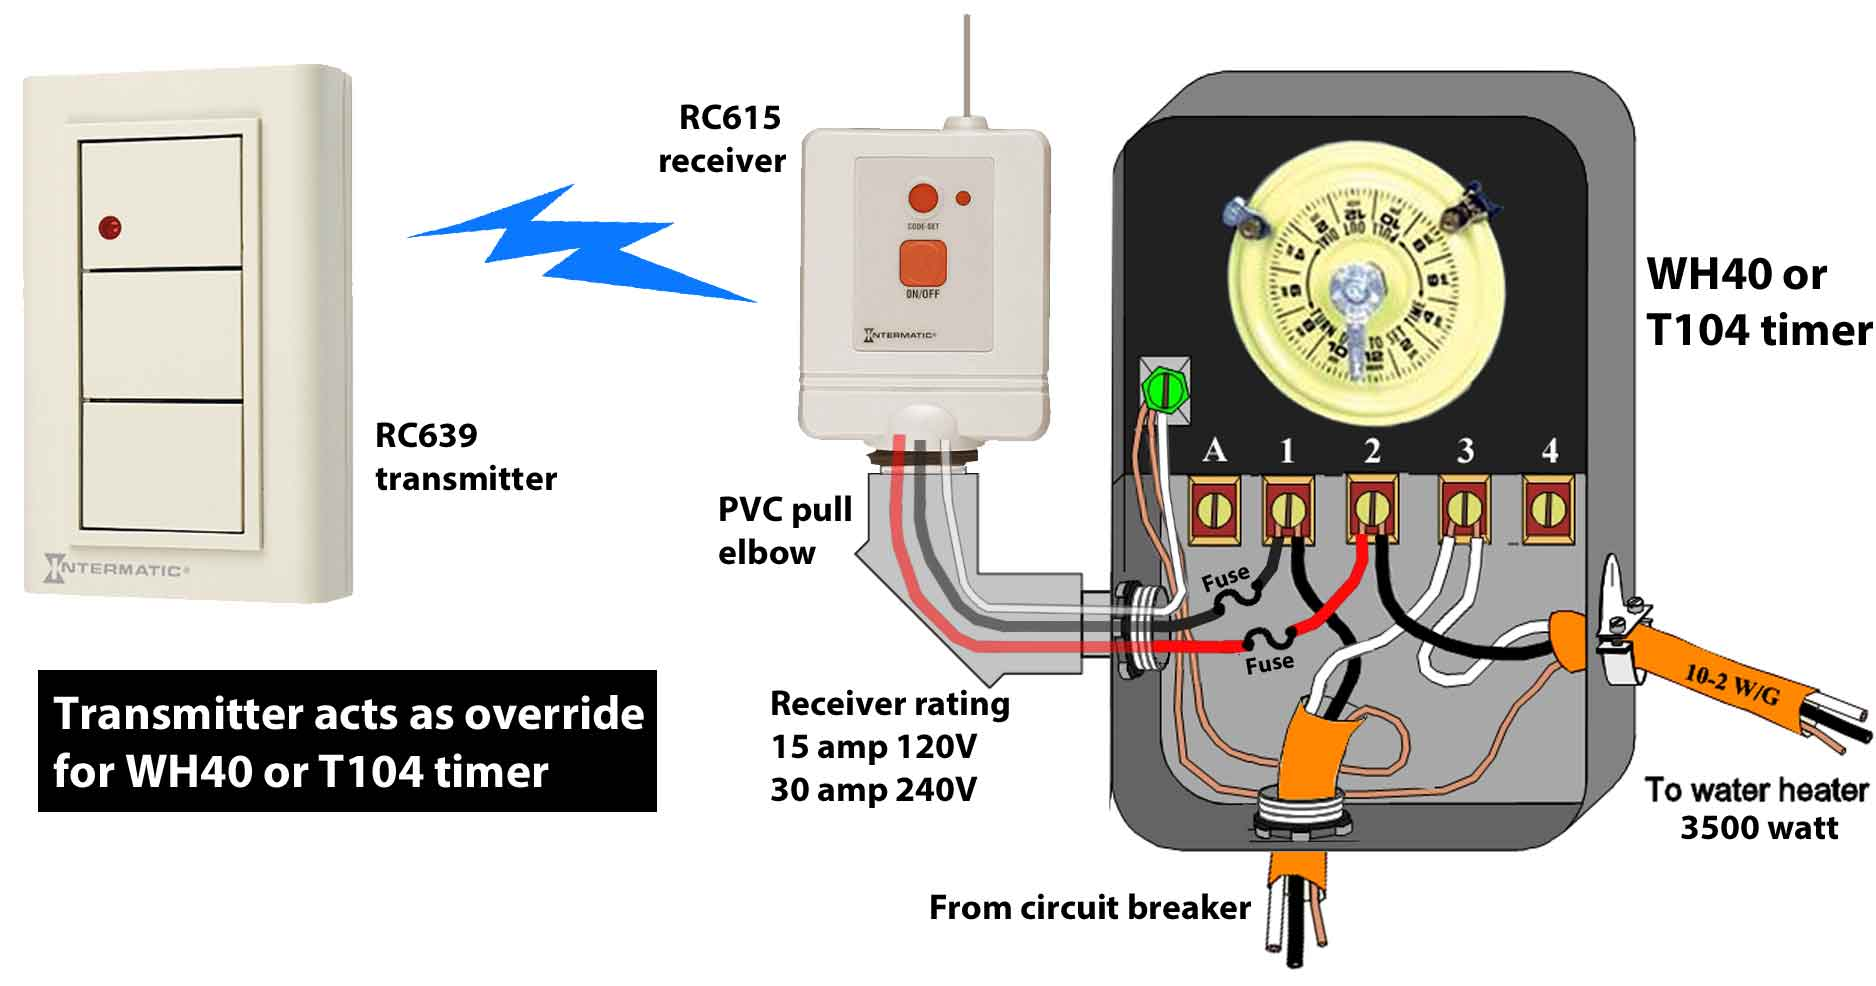 Intermatic remote RC control how to wire wh40 water heater timer water heater wiring diagram at soozxer.org